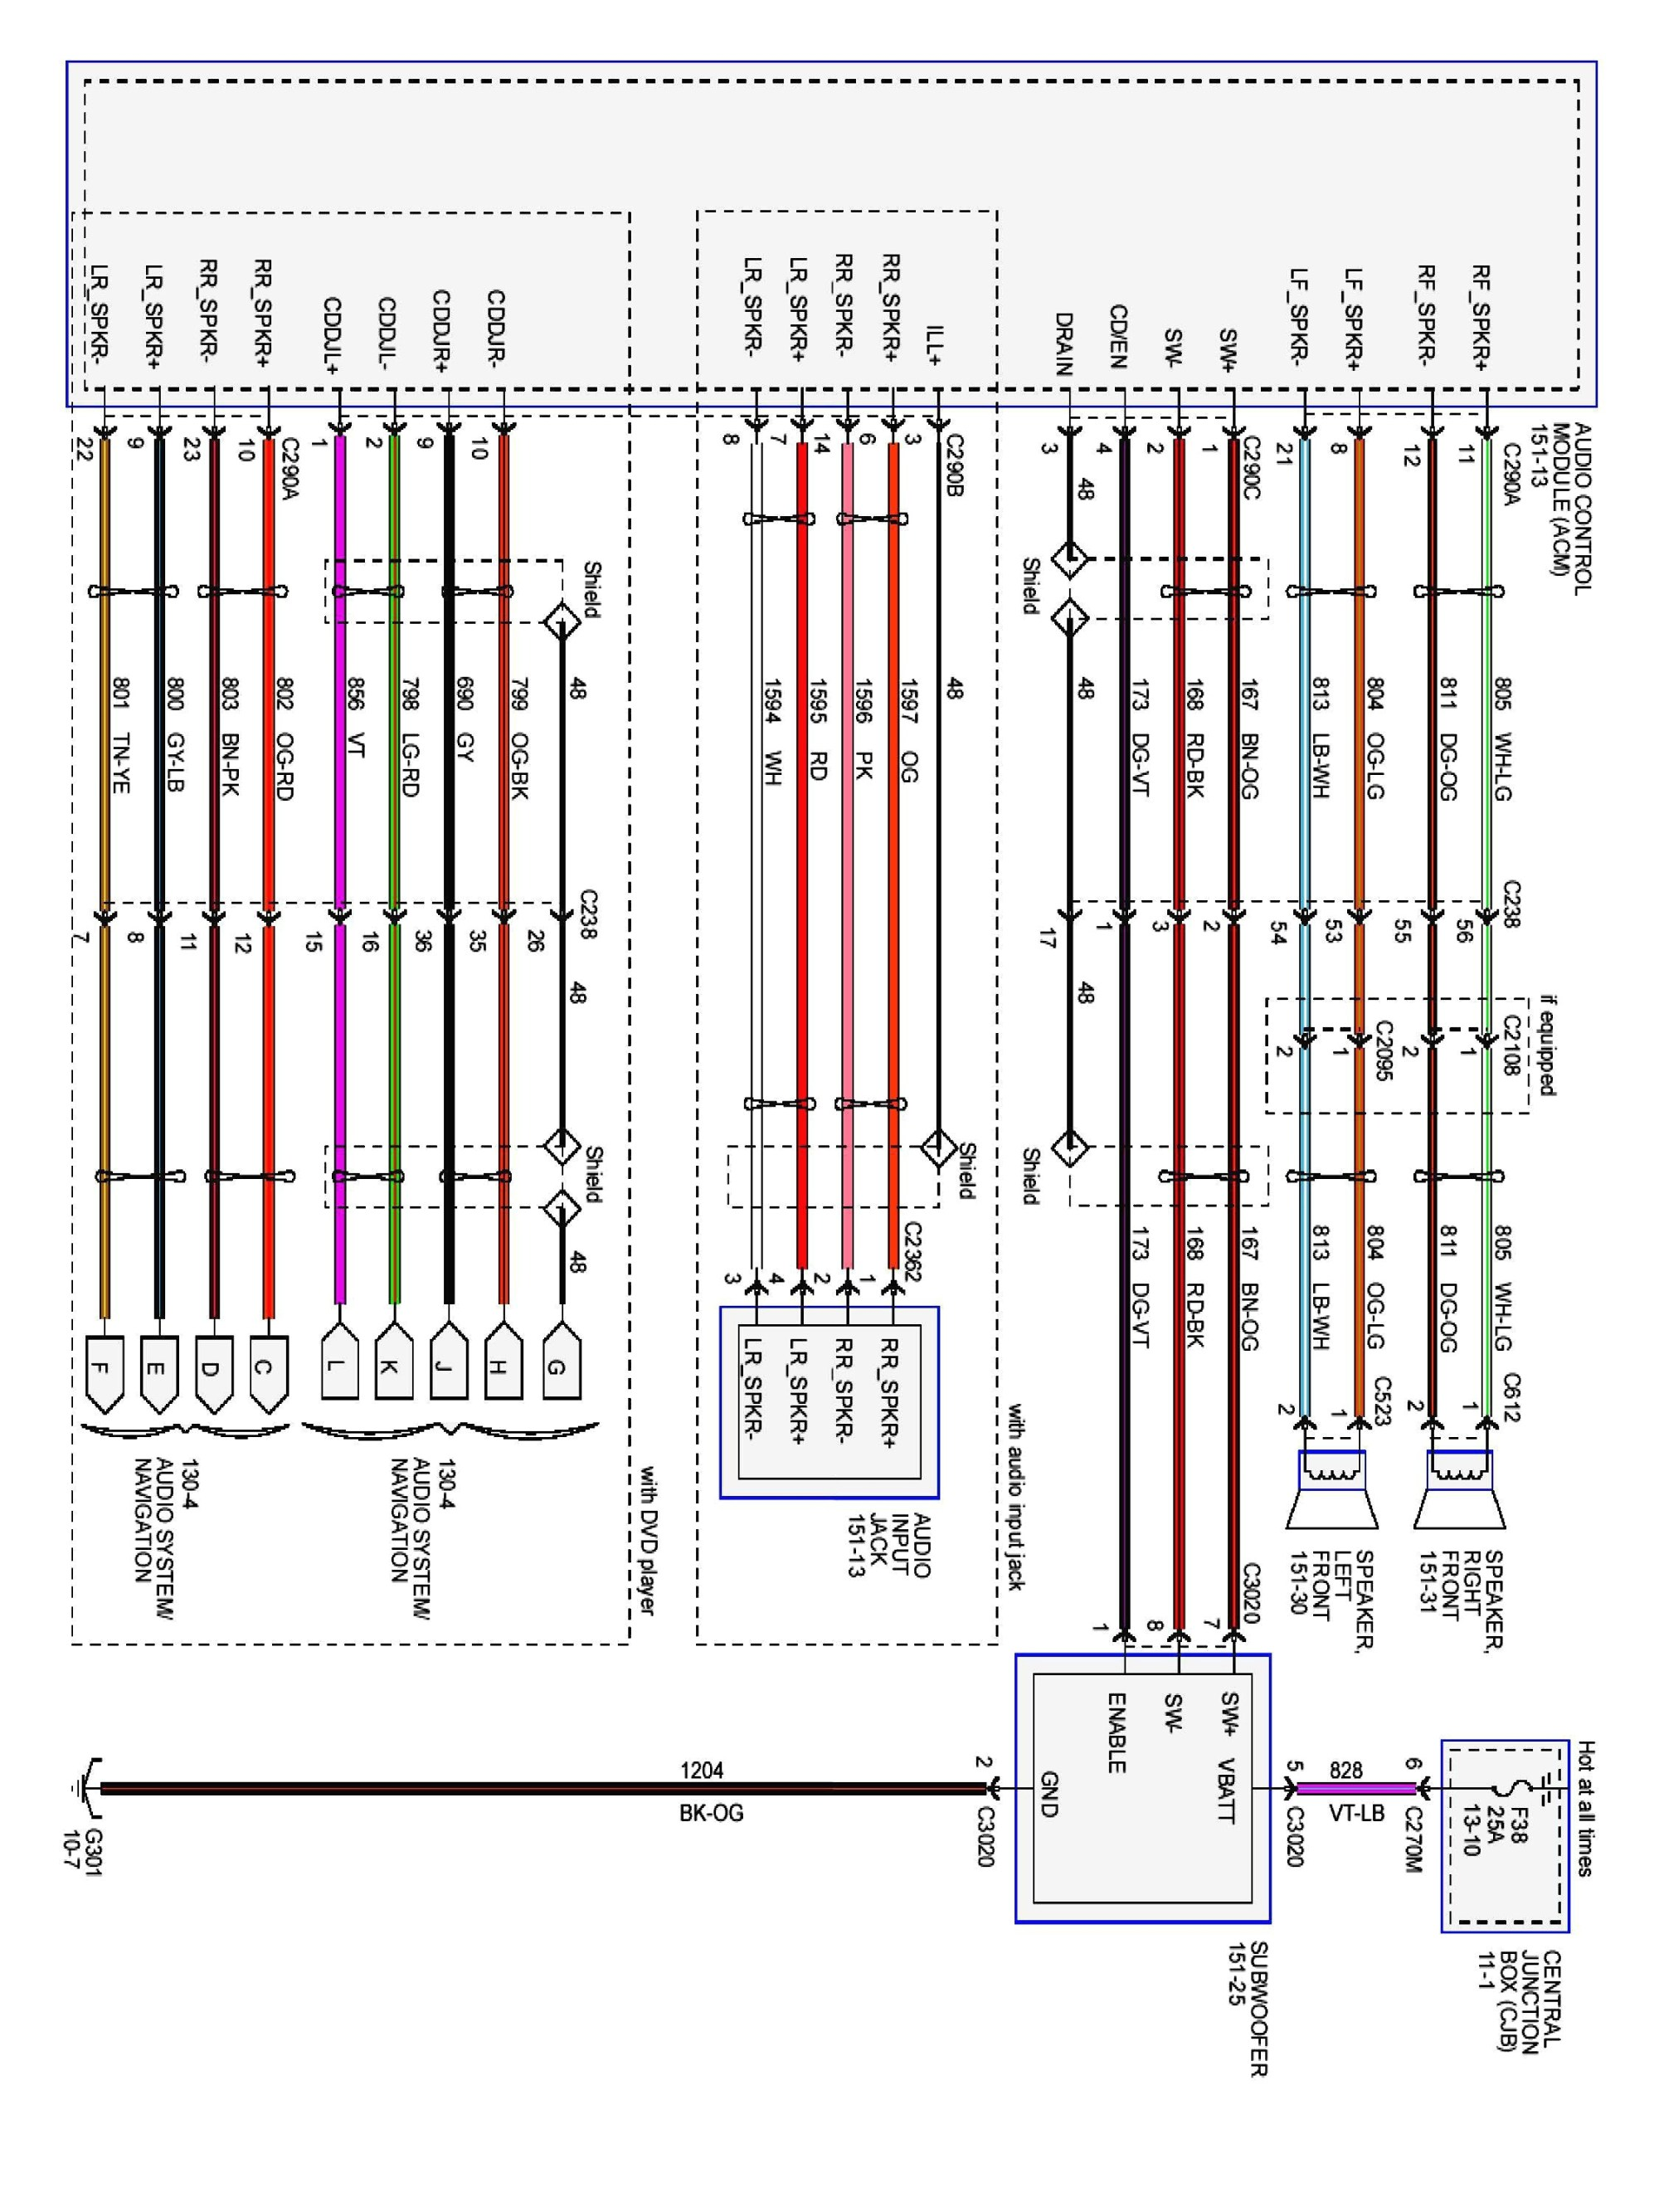 hight resolution of 04 focus wiring diagram wiring diagram centre04 focus wiring diagram